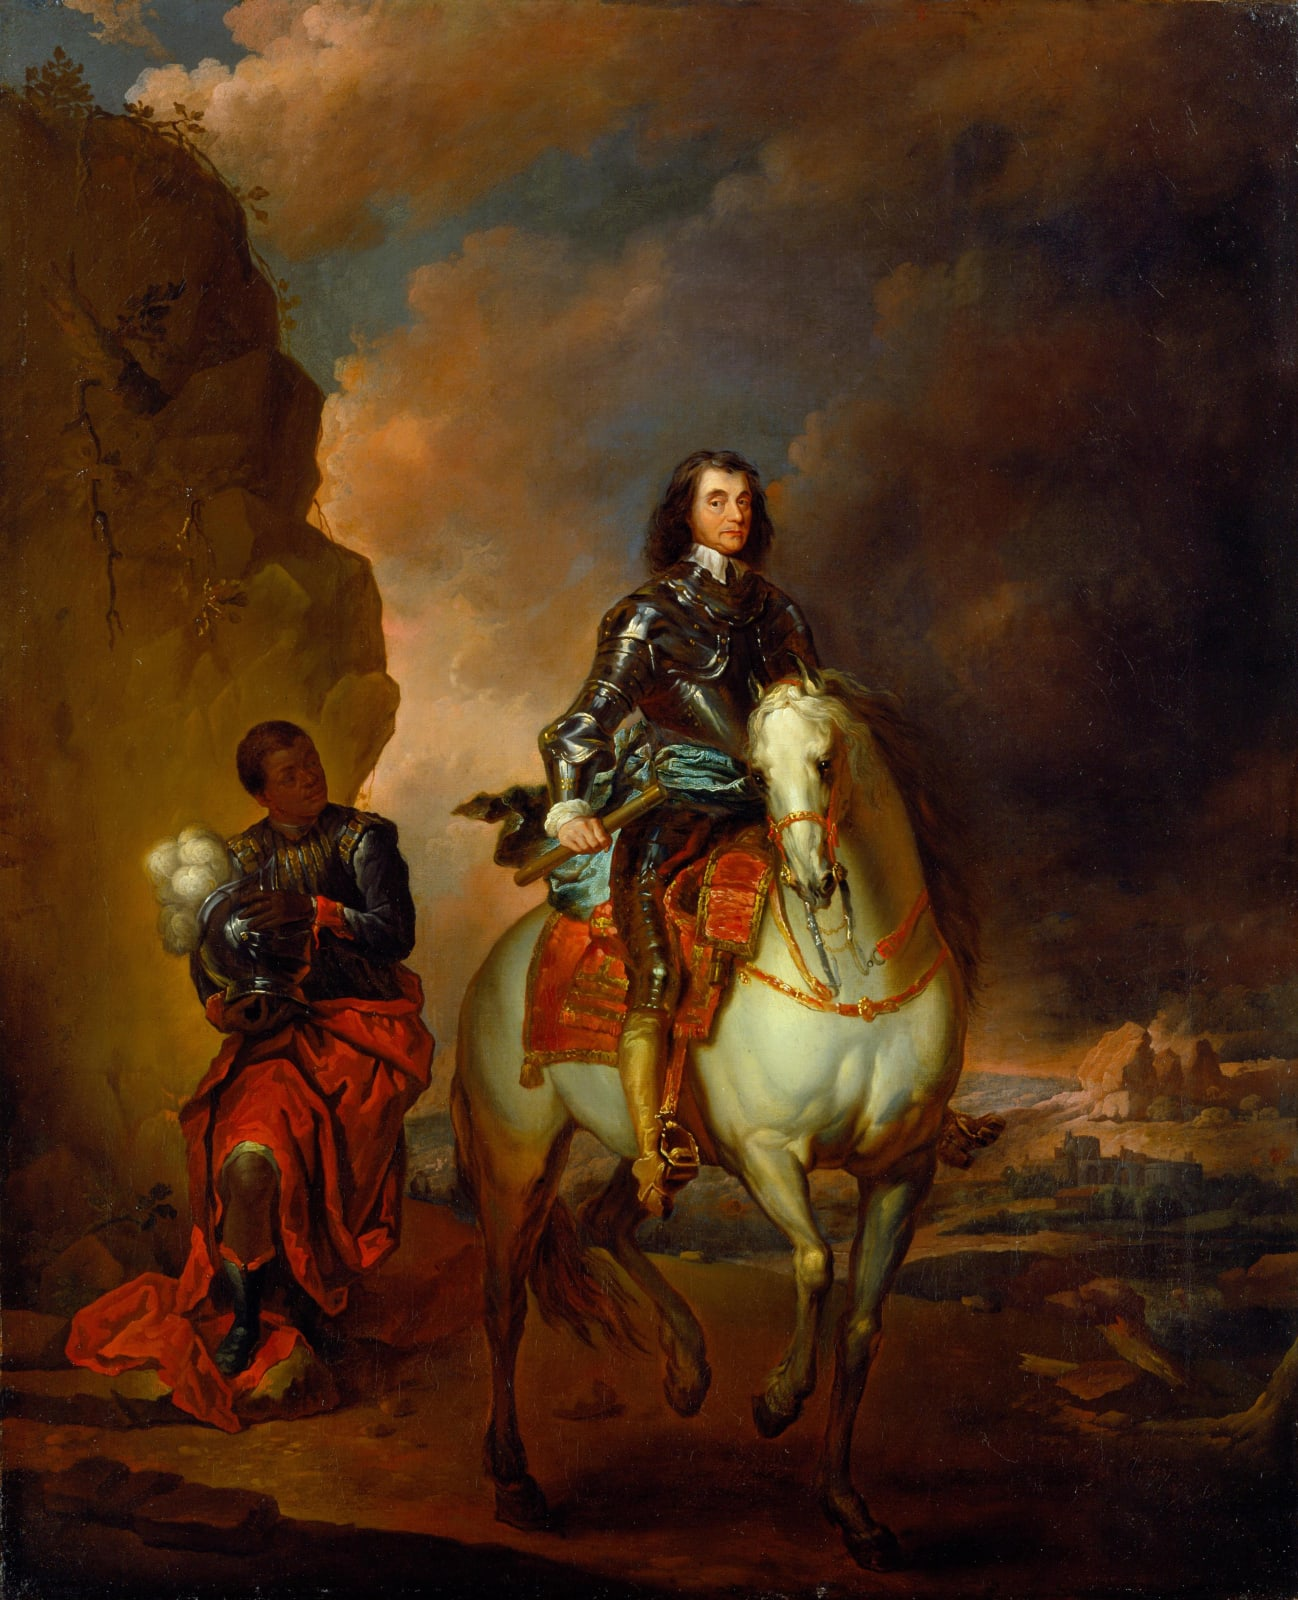 Oliver Cromwell, Lord Protector (1599 - 1658)